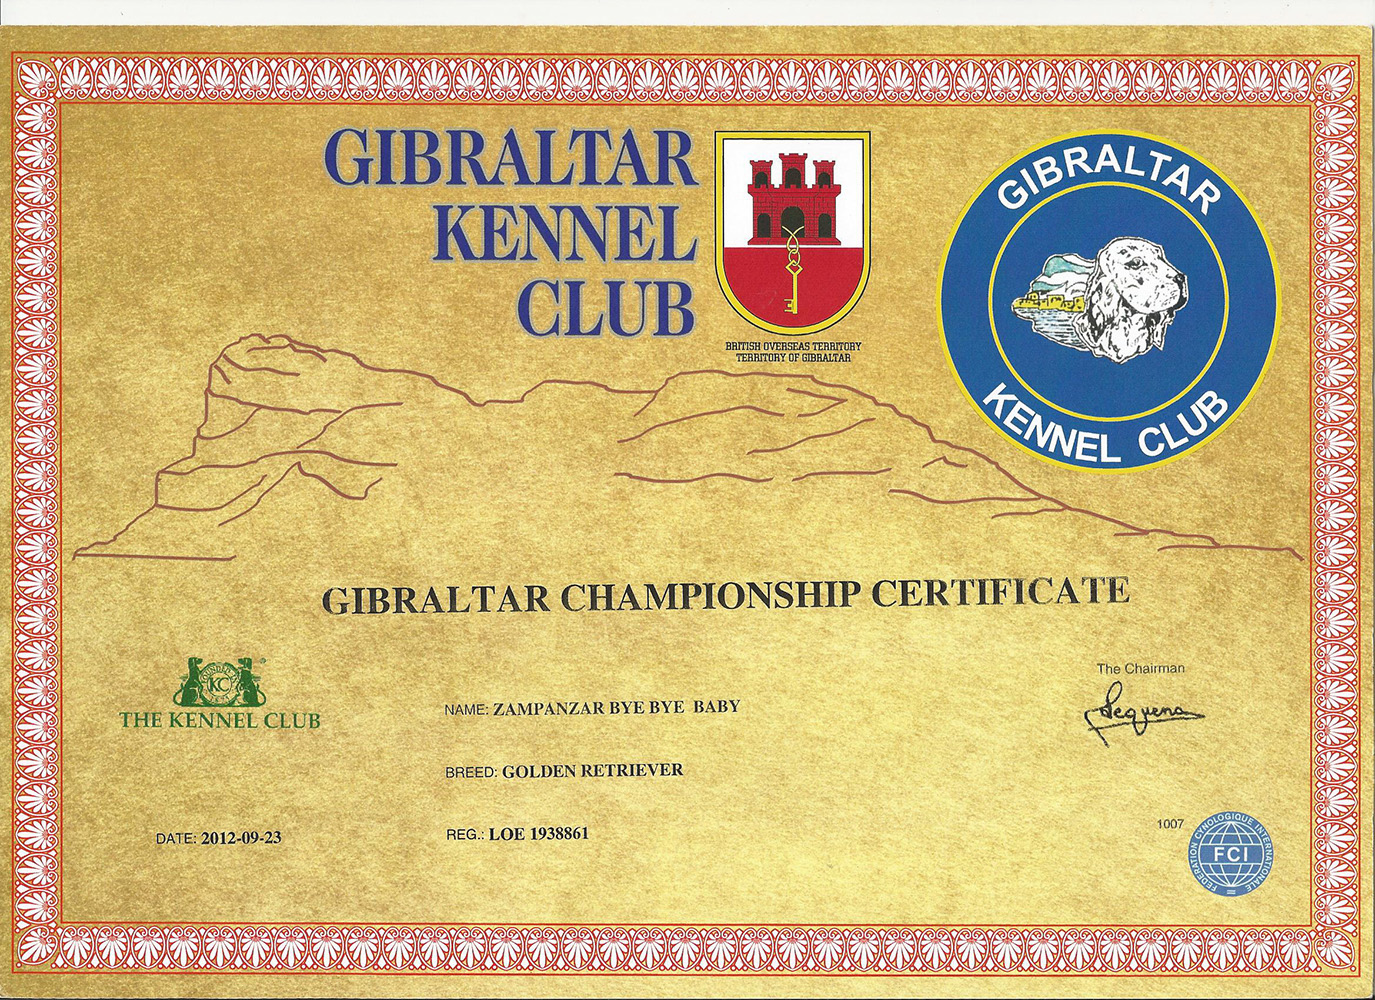 RISOTTO GBZ CHAMPION CERTIFICATEbis